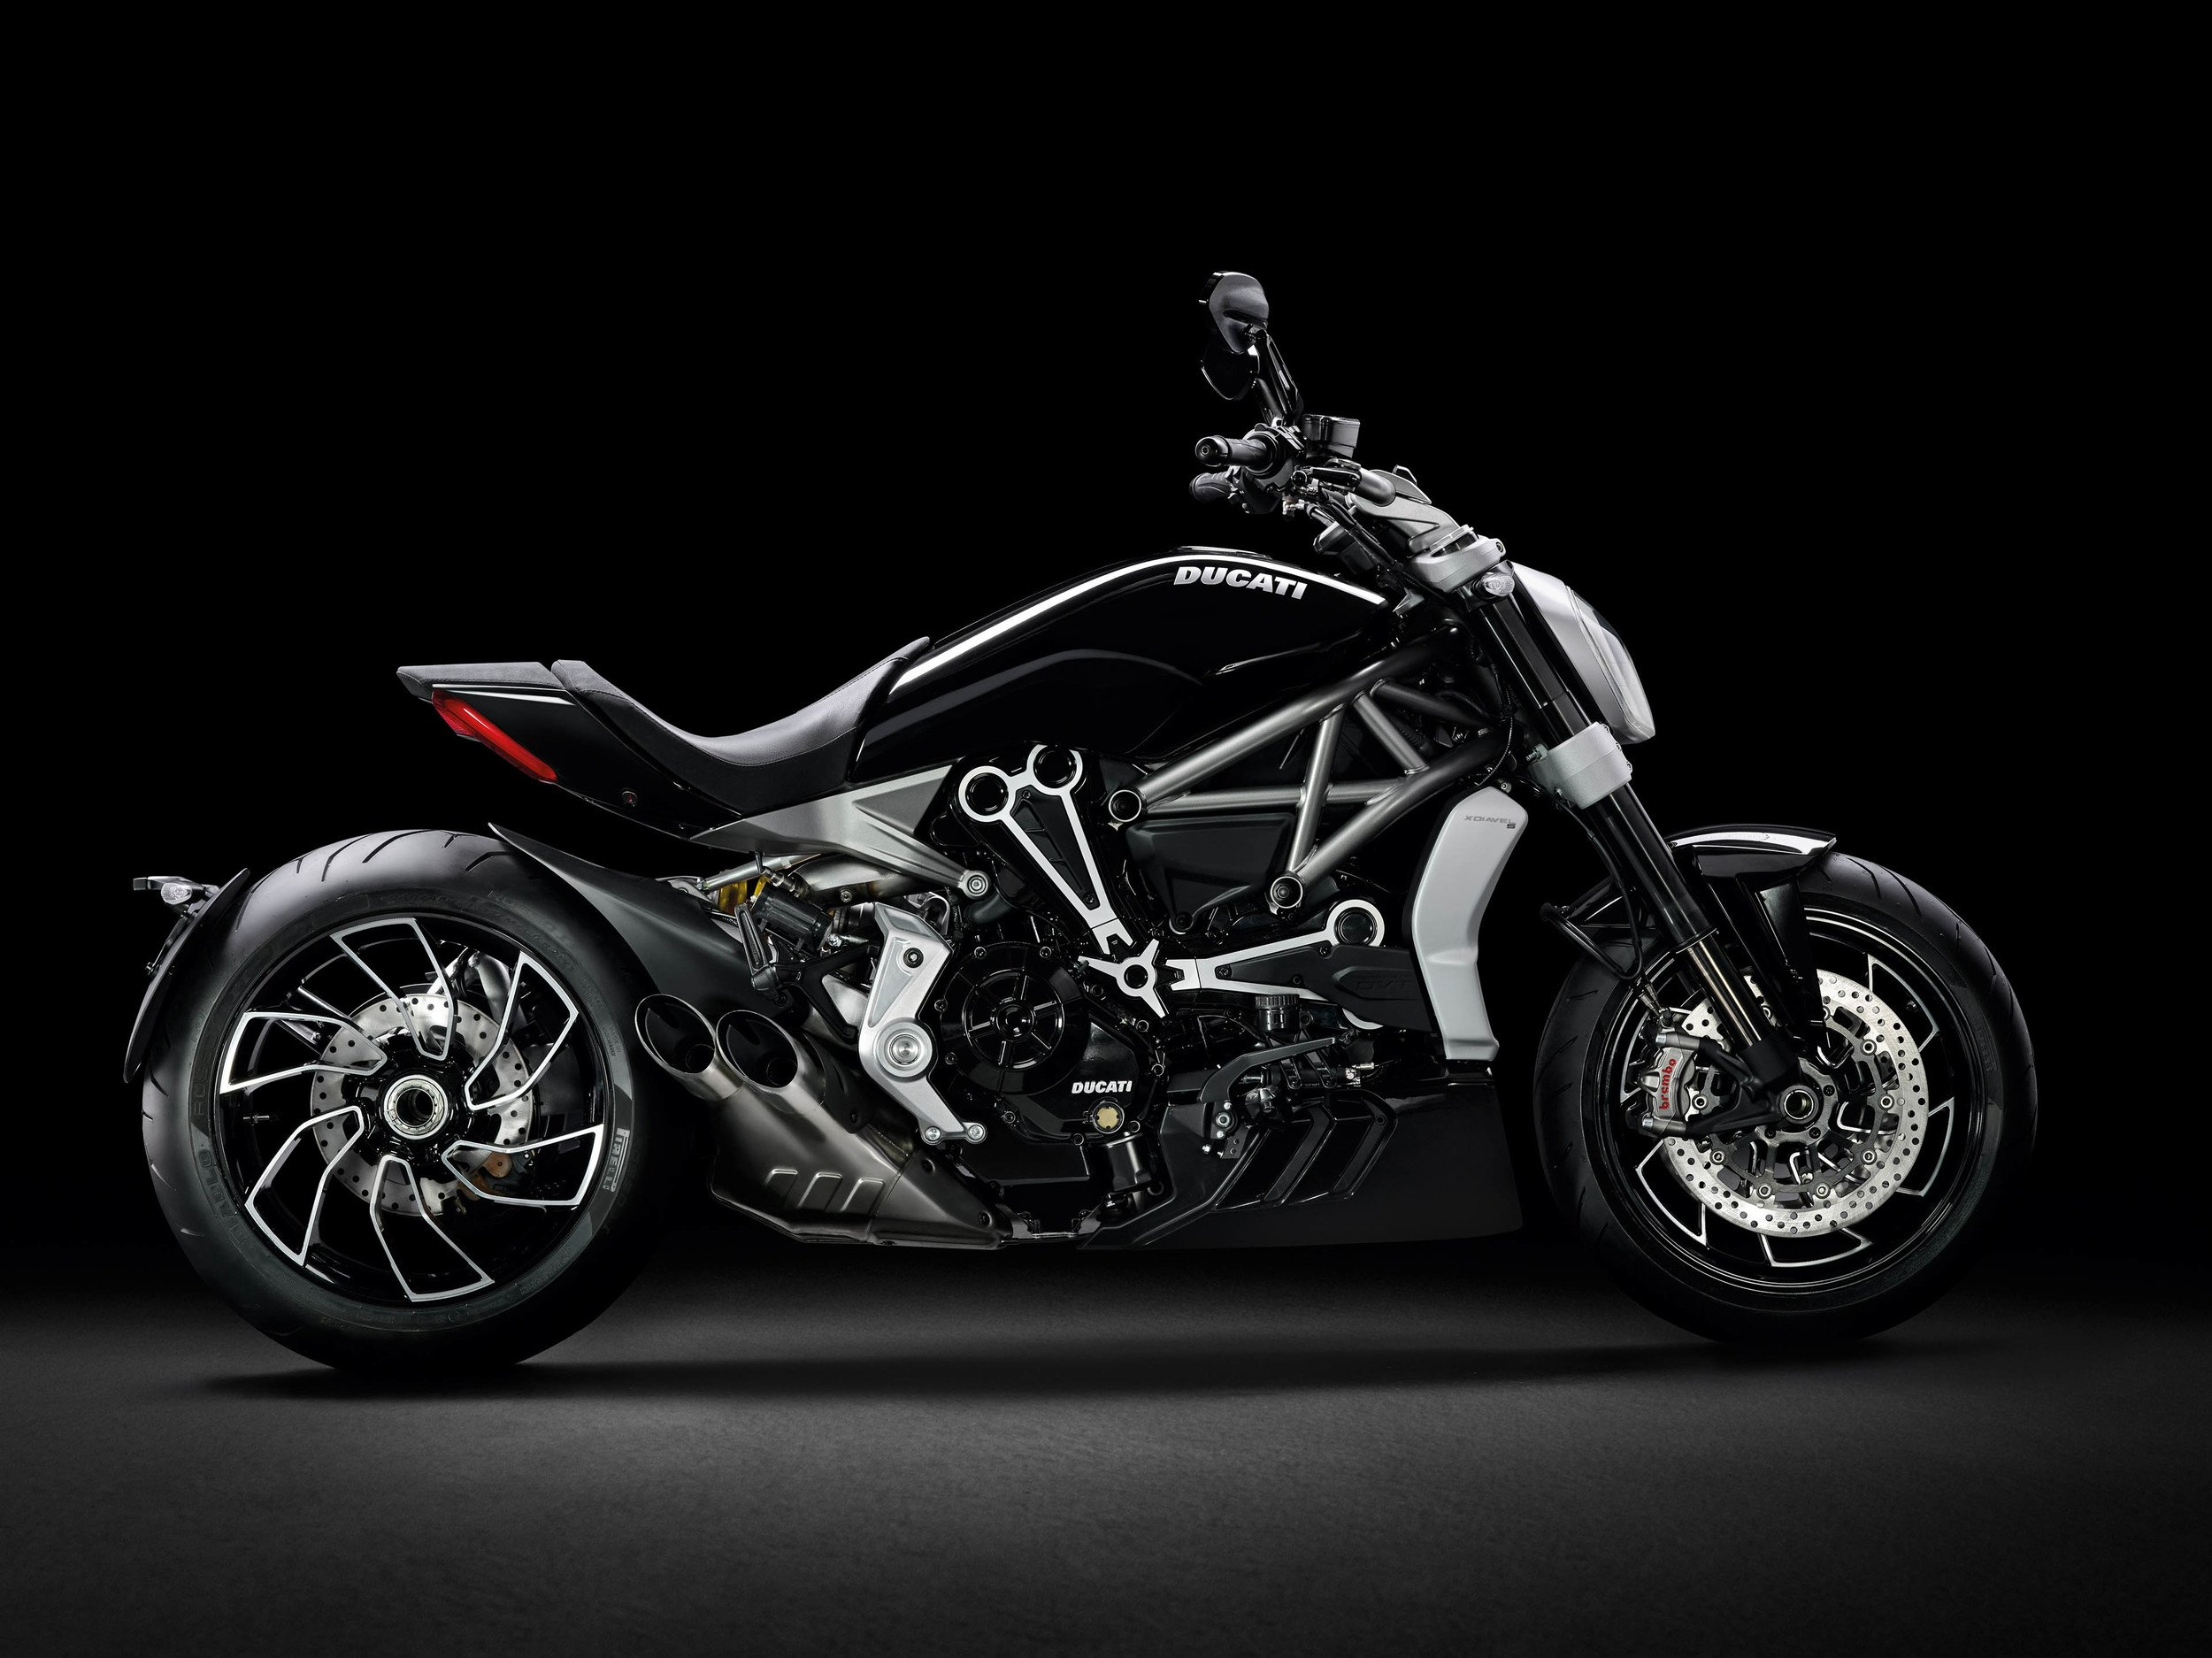 ducati xdiavel cruiser motorcycles 2016 wallpaper | 2500x1874